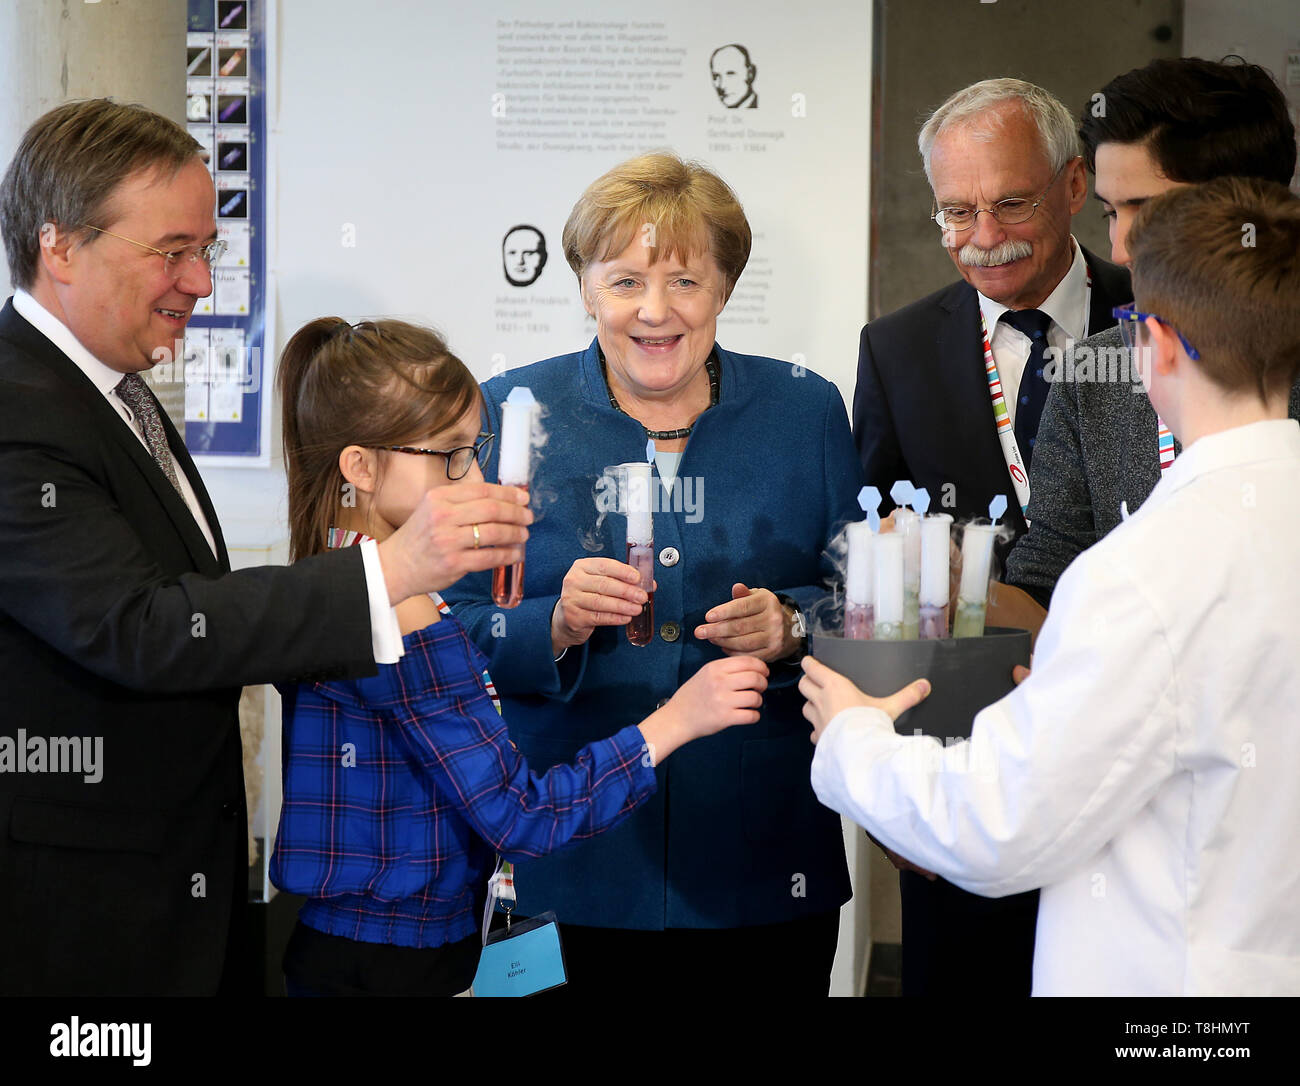 Wuppertal, Germany. 13th May, 2019. Federal Chancellor Angela Merkel (M, CDU), Armin Laschet, Prime Minister of North Rhine-Westphalia (l, CDU), and the founder of the Junior University Ernst-Andreas Ziegler (2nd from right) are presented with dry ice with syrup in a test tube by pupils. The Wuppertal Junior University is a nationwide unique extracurricular educational and research institution for 4 to 20 year olds. Credit: Oliver Berg/dpa/Alamy Live News - Stock Image